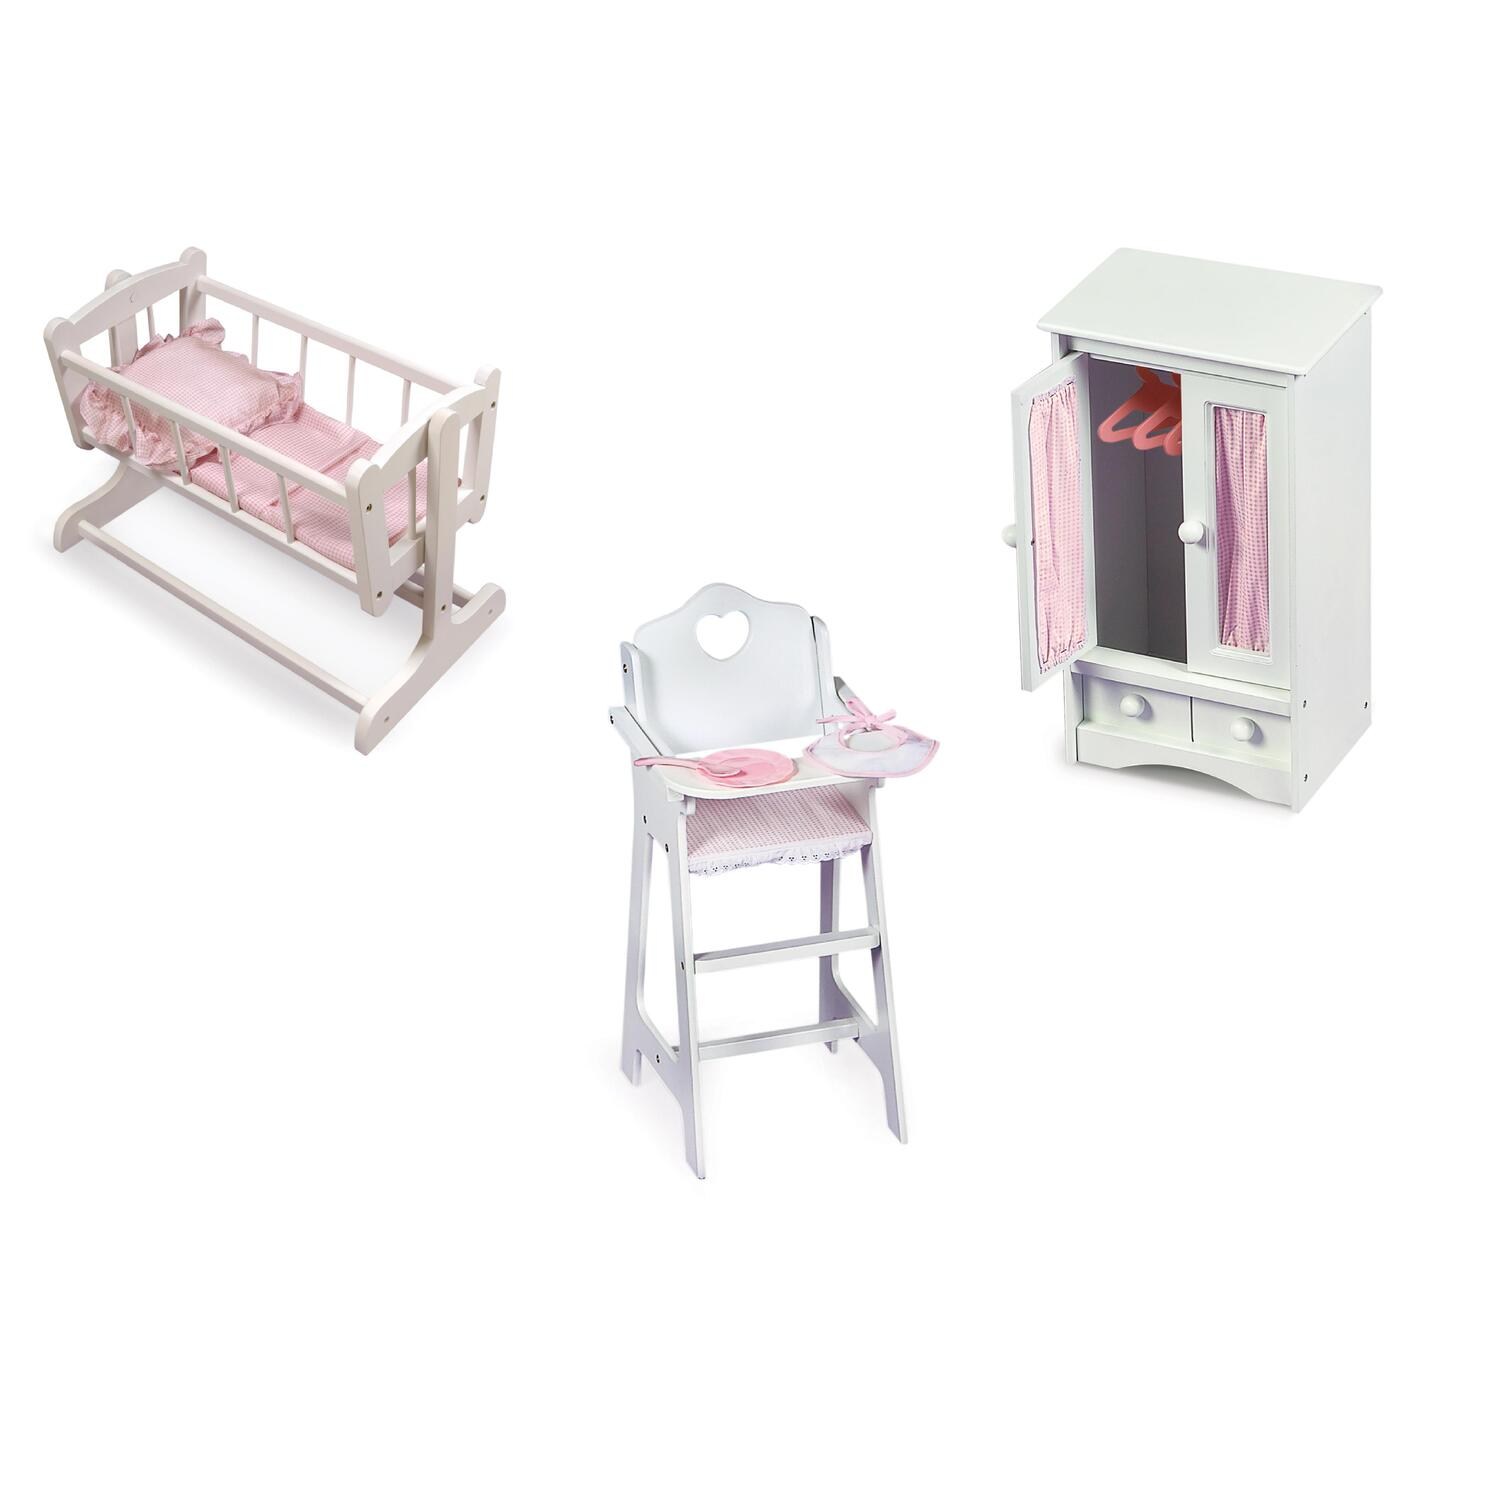 Heirloom Doll Furniture Set - From $139.99 to $173.99 | OJCommerce